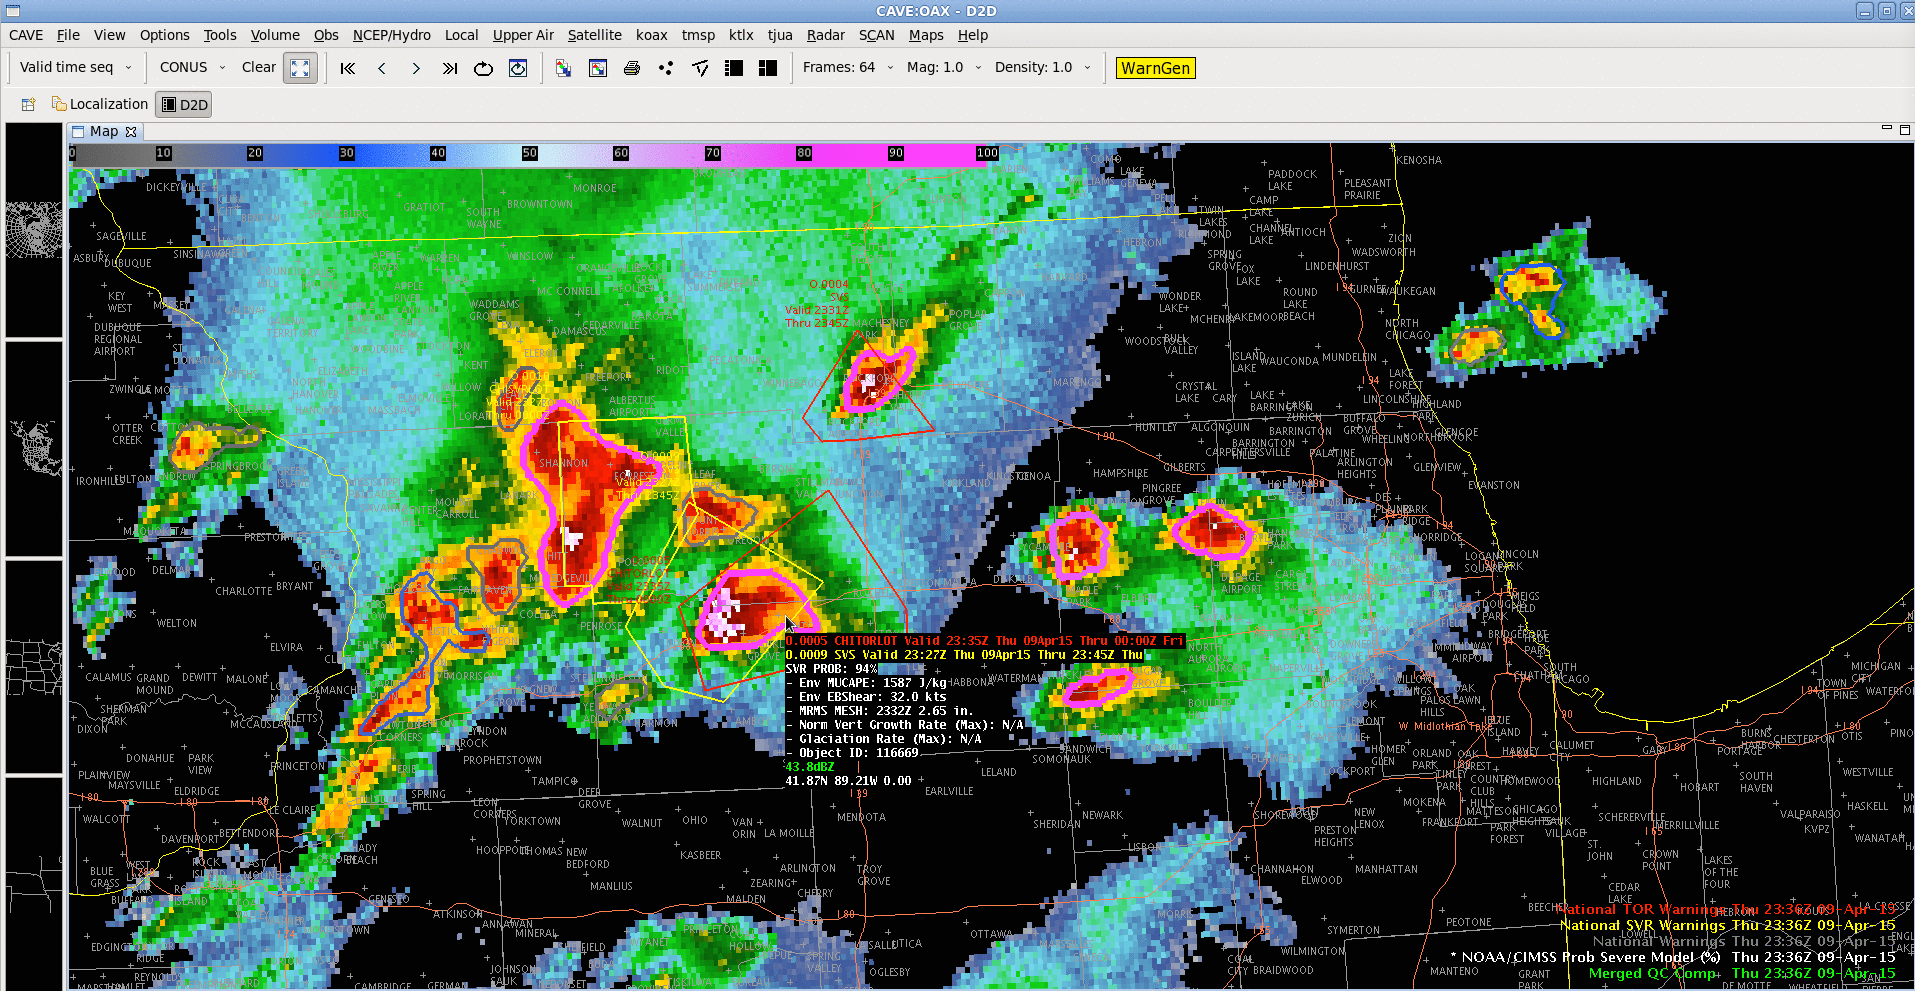 Radar reflectivity with NOAA/CIMSS ProbSevere model contours and NWS warning polygons (click to play animation)